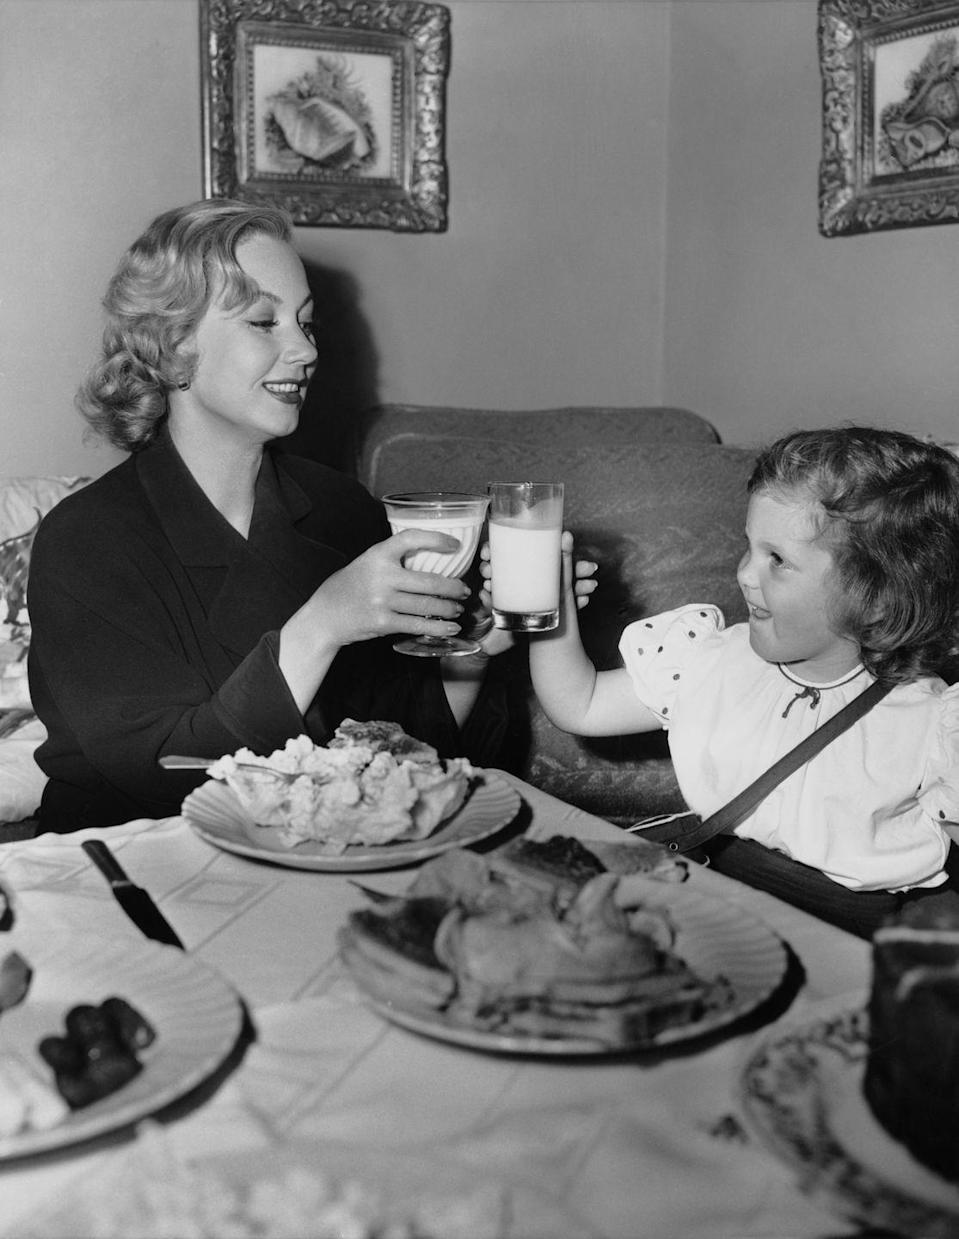 <p>The actress shares a milk toast with her daughter, Tisha Sterling, during a meal in her dressing room on the set of <em>Shadow on the Wall </em>in 1949. </p>